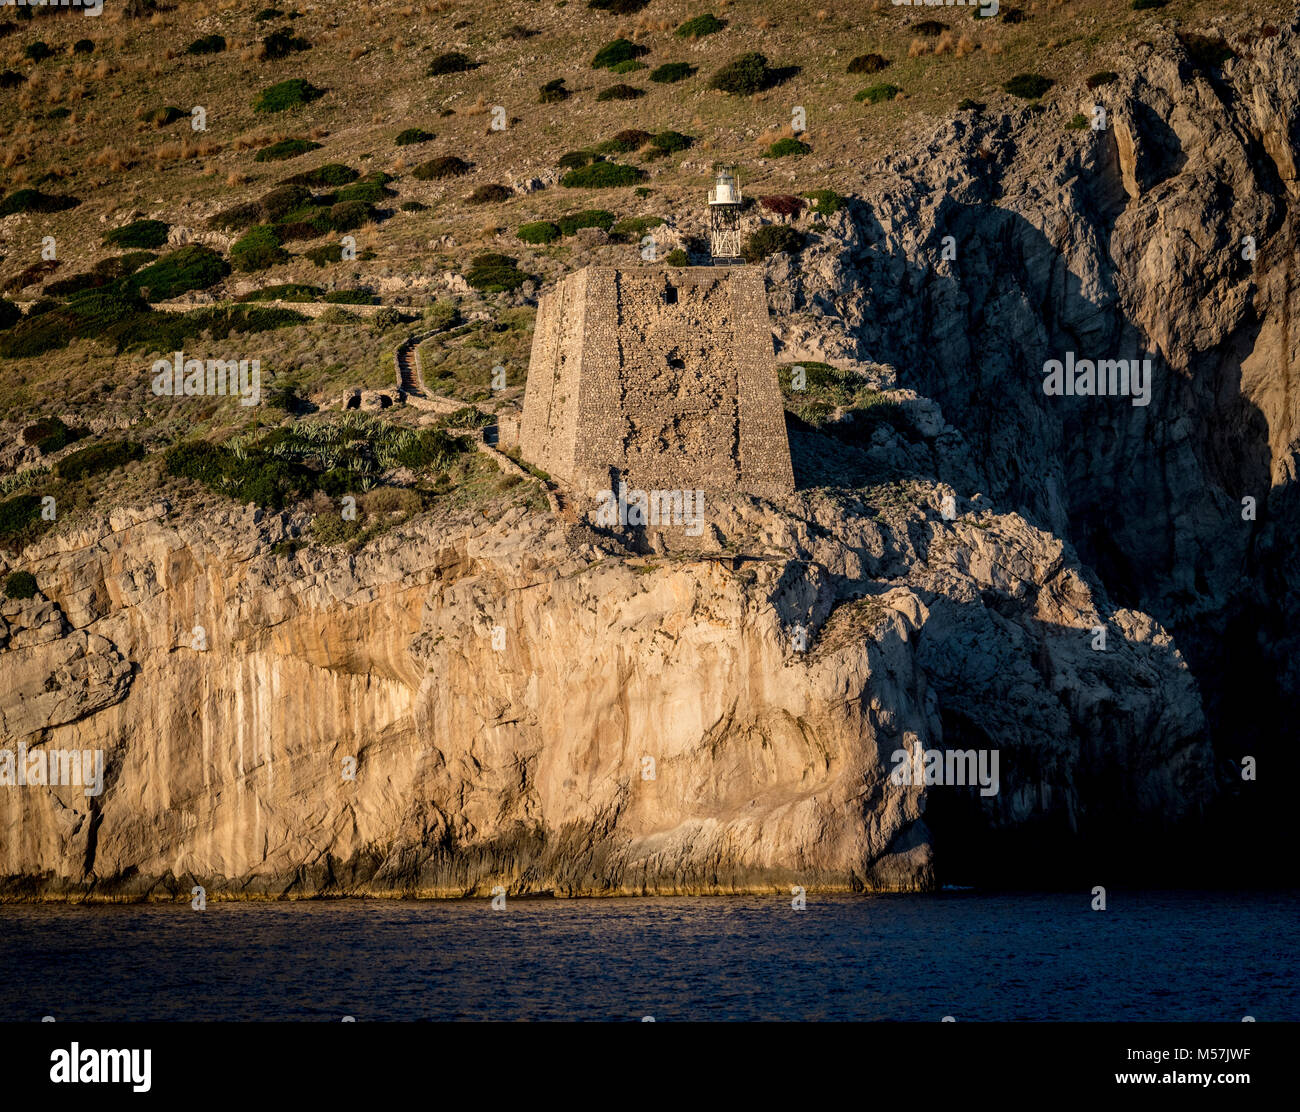 Torre Montalto guard tower, Tower of Punta Campanella in Massa Lubrense, Gulf of Naples, Campania, Italy. - Stock Image